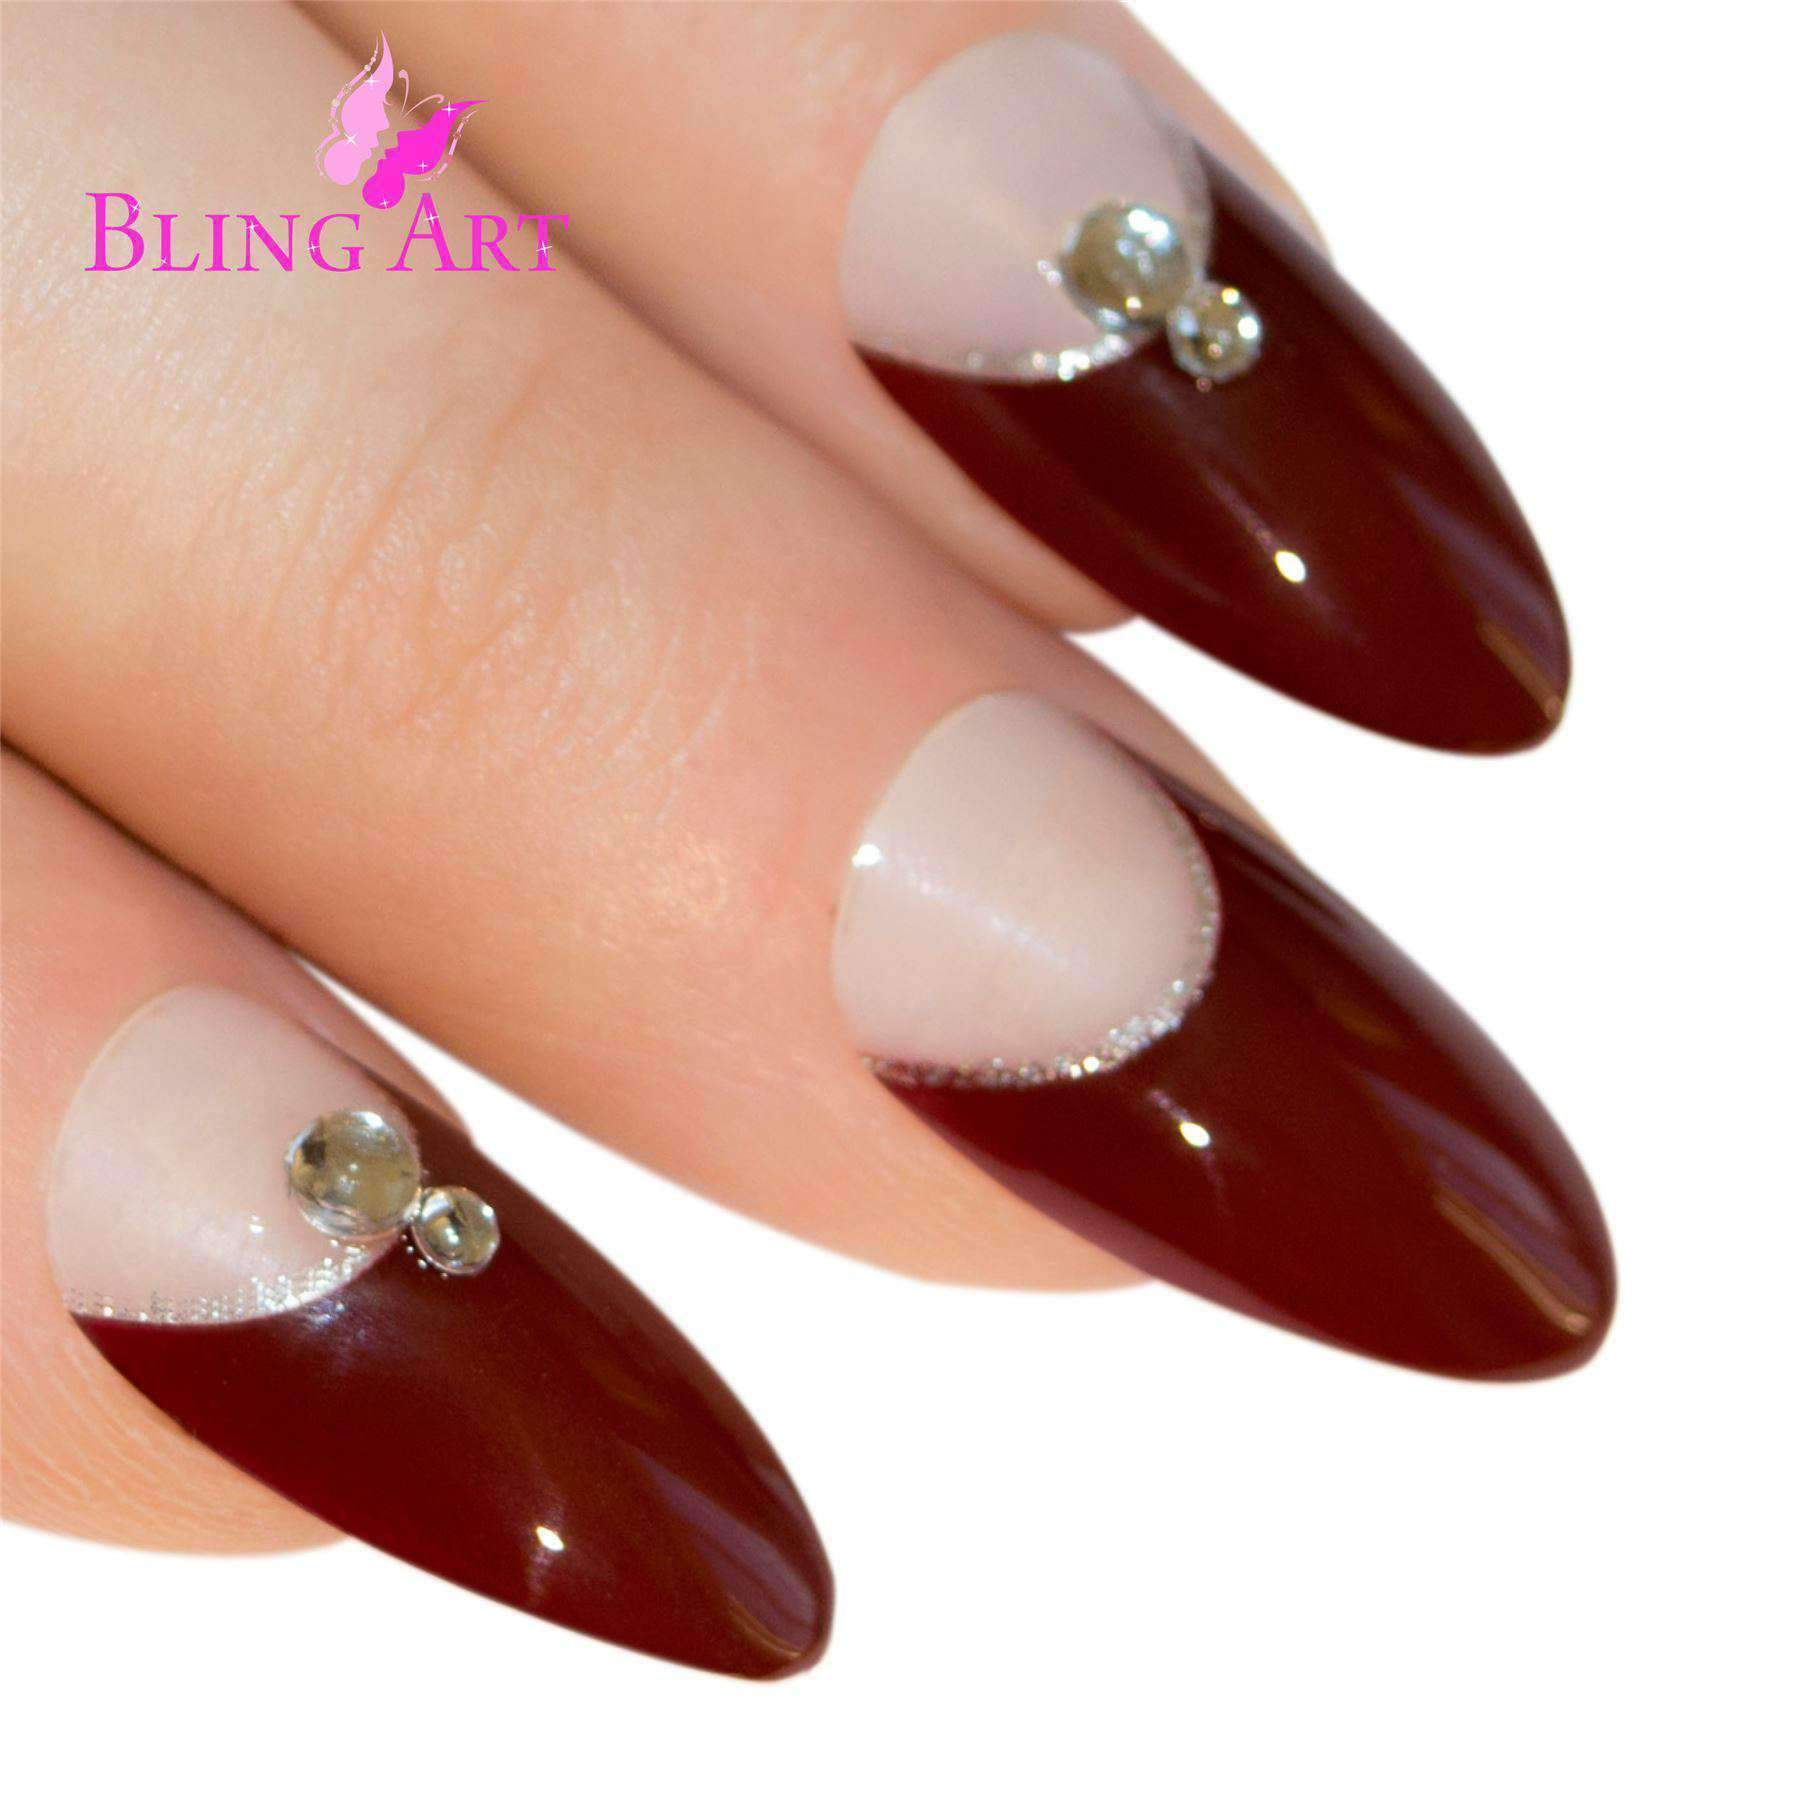 False Nails Bling Art Red Brown Almond Stiletto Long Fake Acrylic Tips